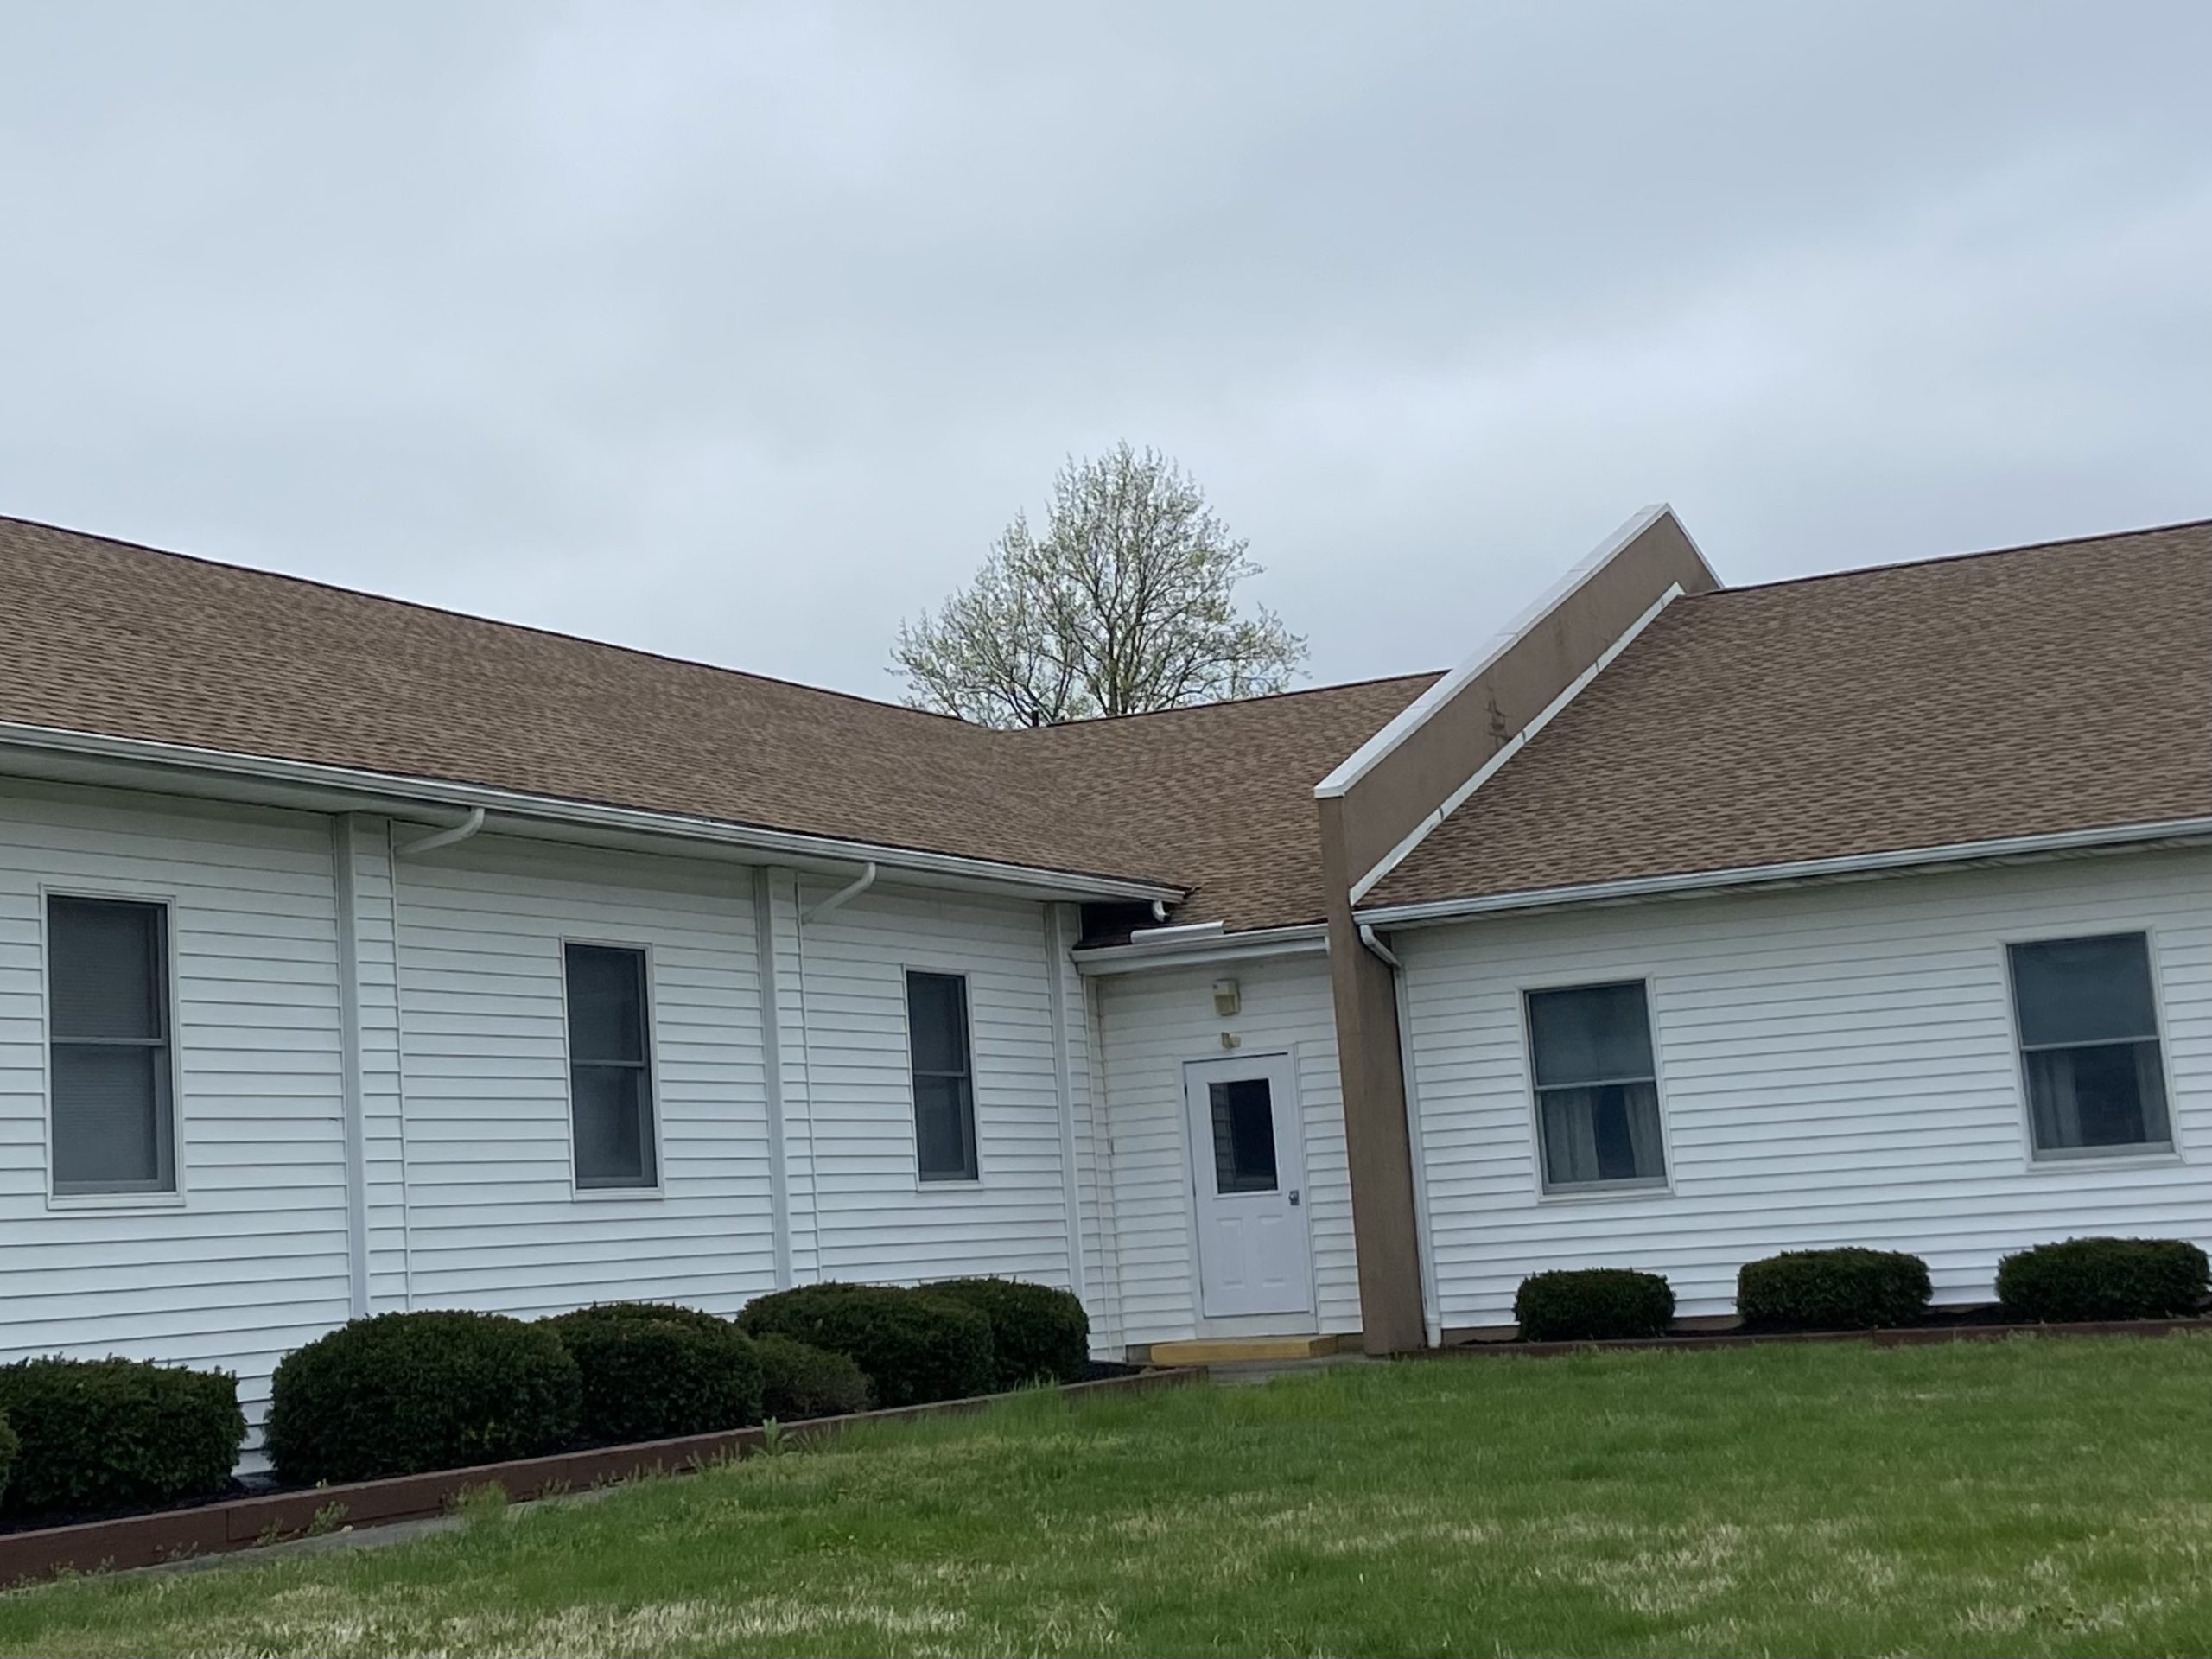 Roof Replacement at Hardingville Bible Church in Monroeville, NJ